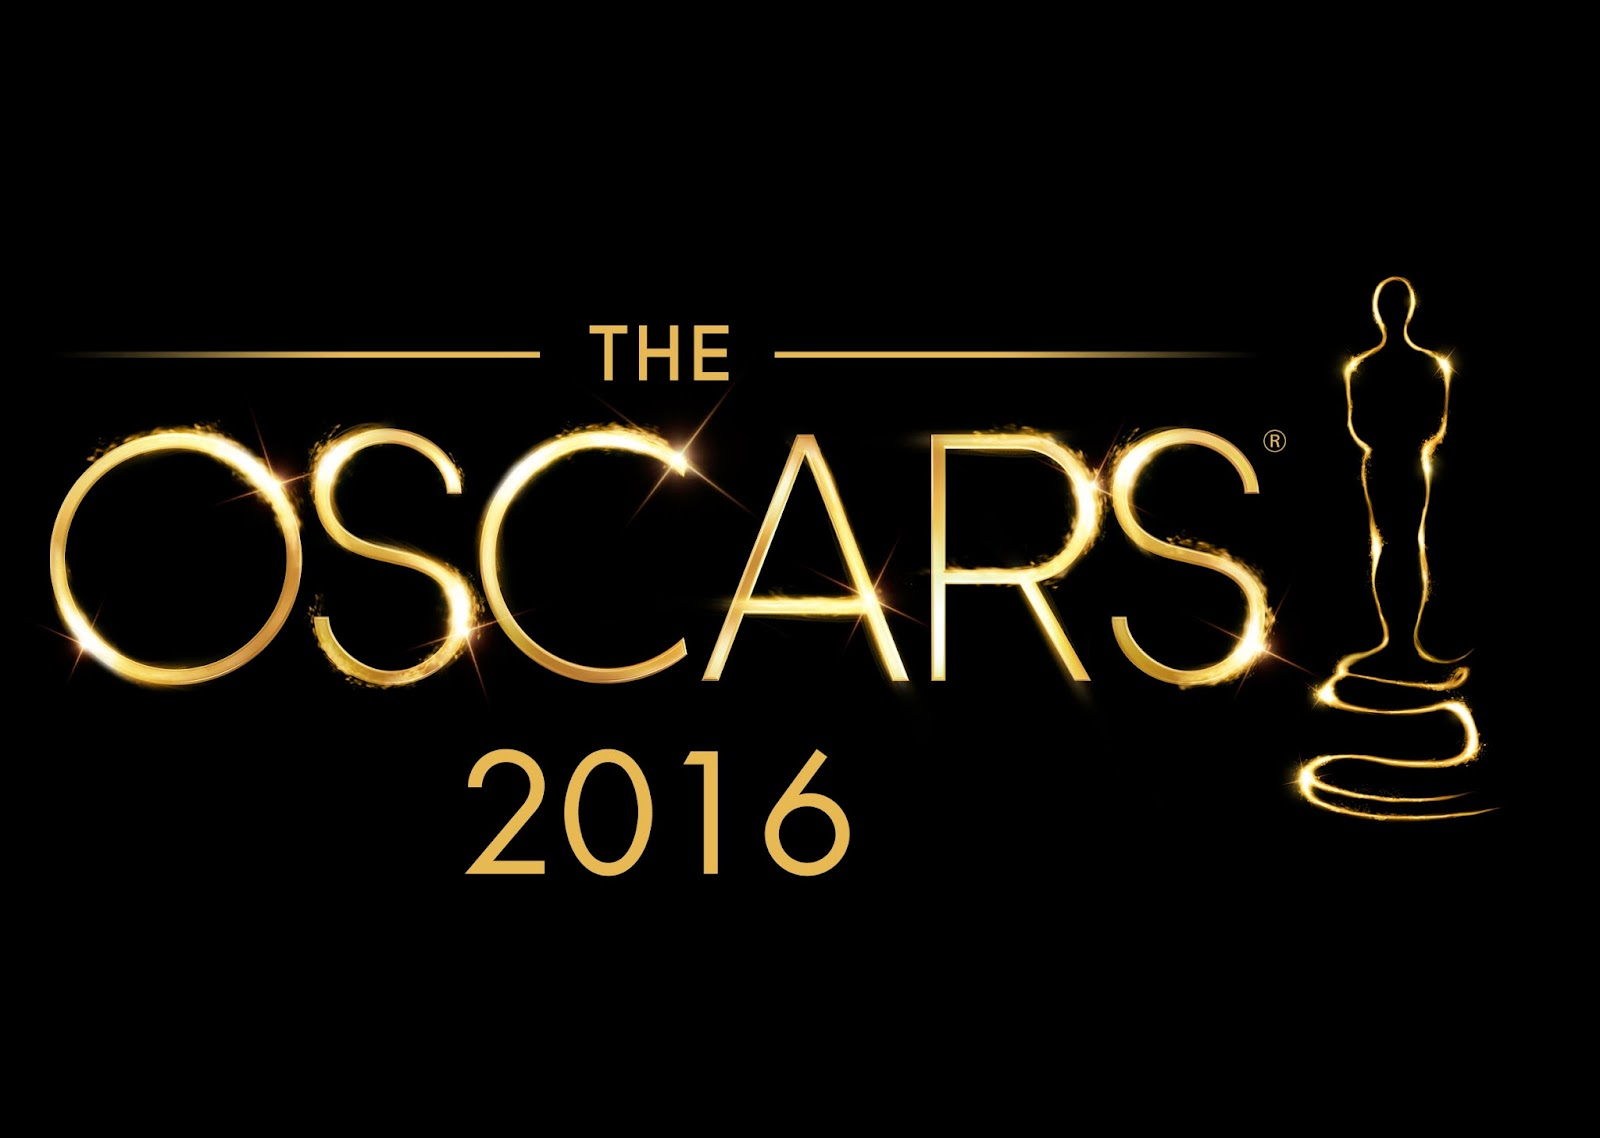 Full winners list of Oscars 2016 results Academy Awards 88th Annual